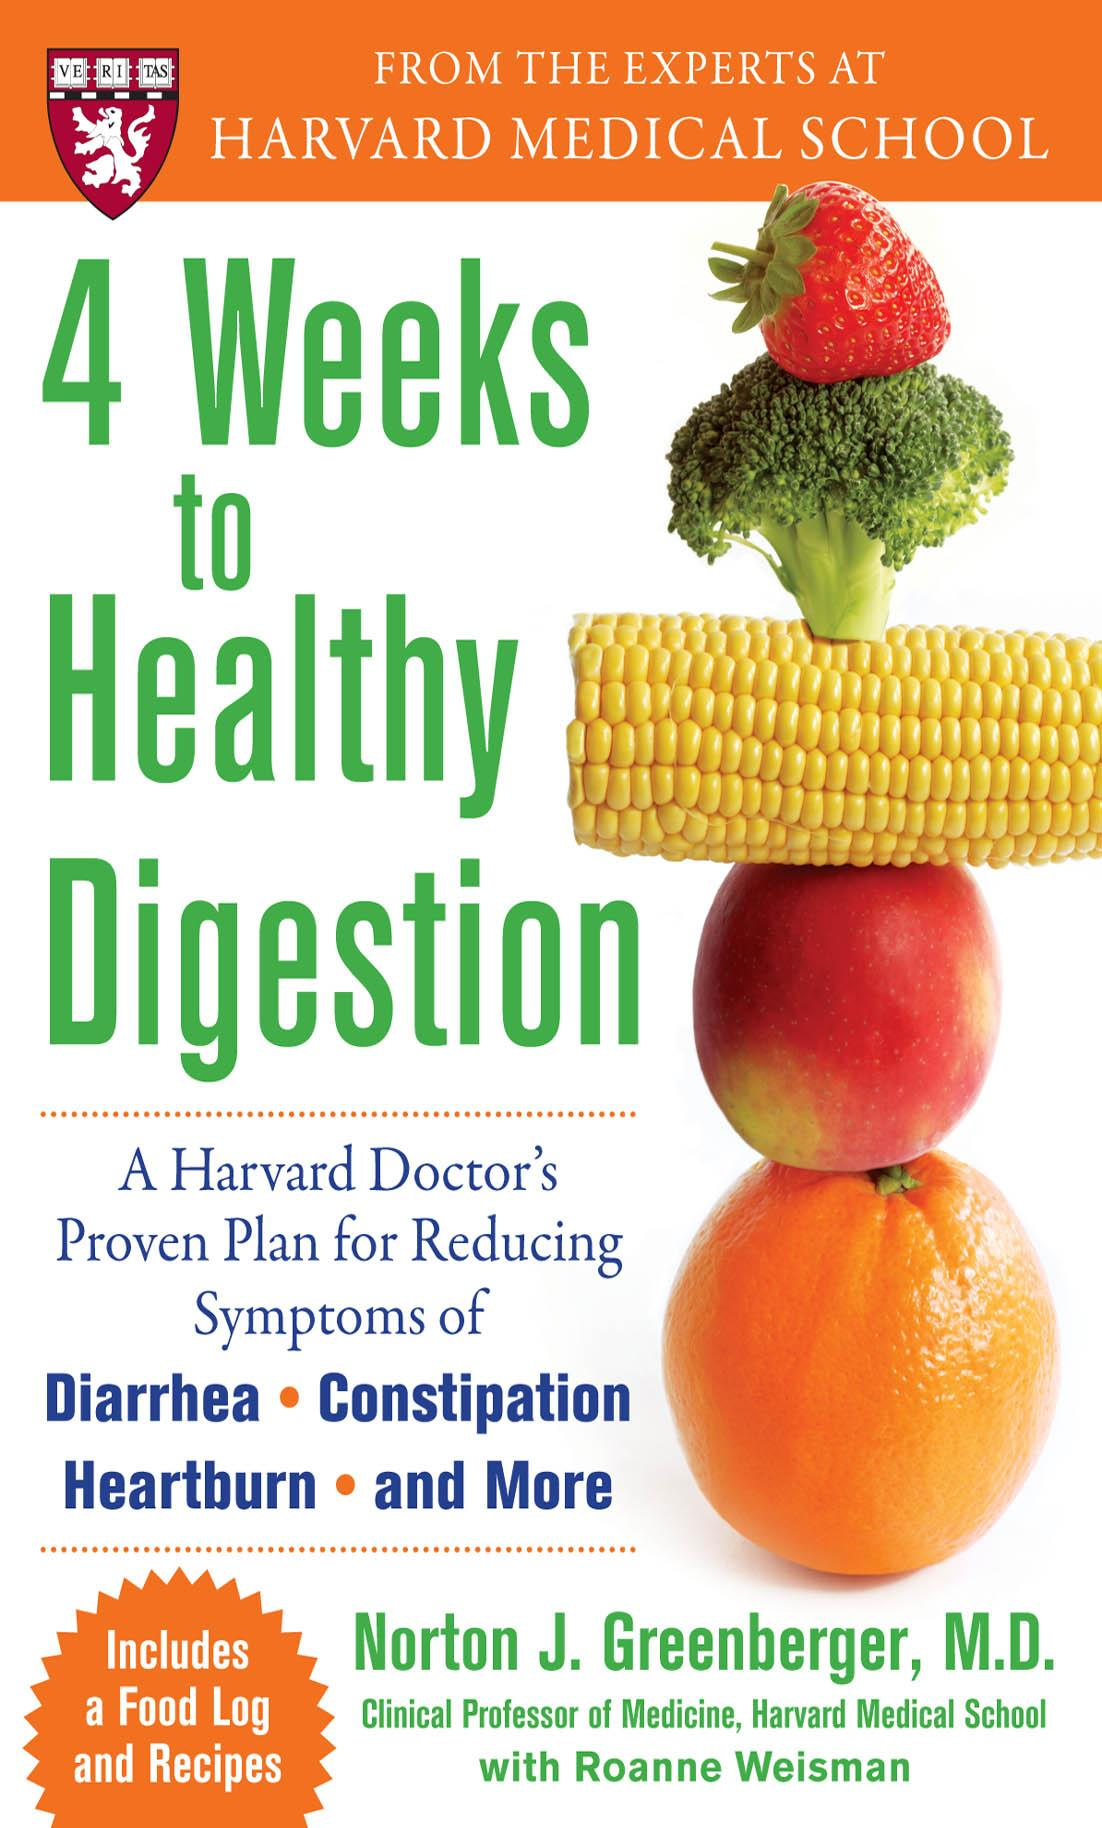 4 Weeks to Healthy Digestion: A Harvard Doctor's Proven Plan for Reducing Symptoms of Diarrhea,Constipation, Heartburn, and More